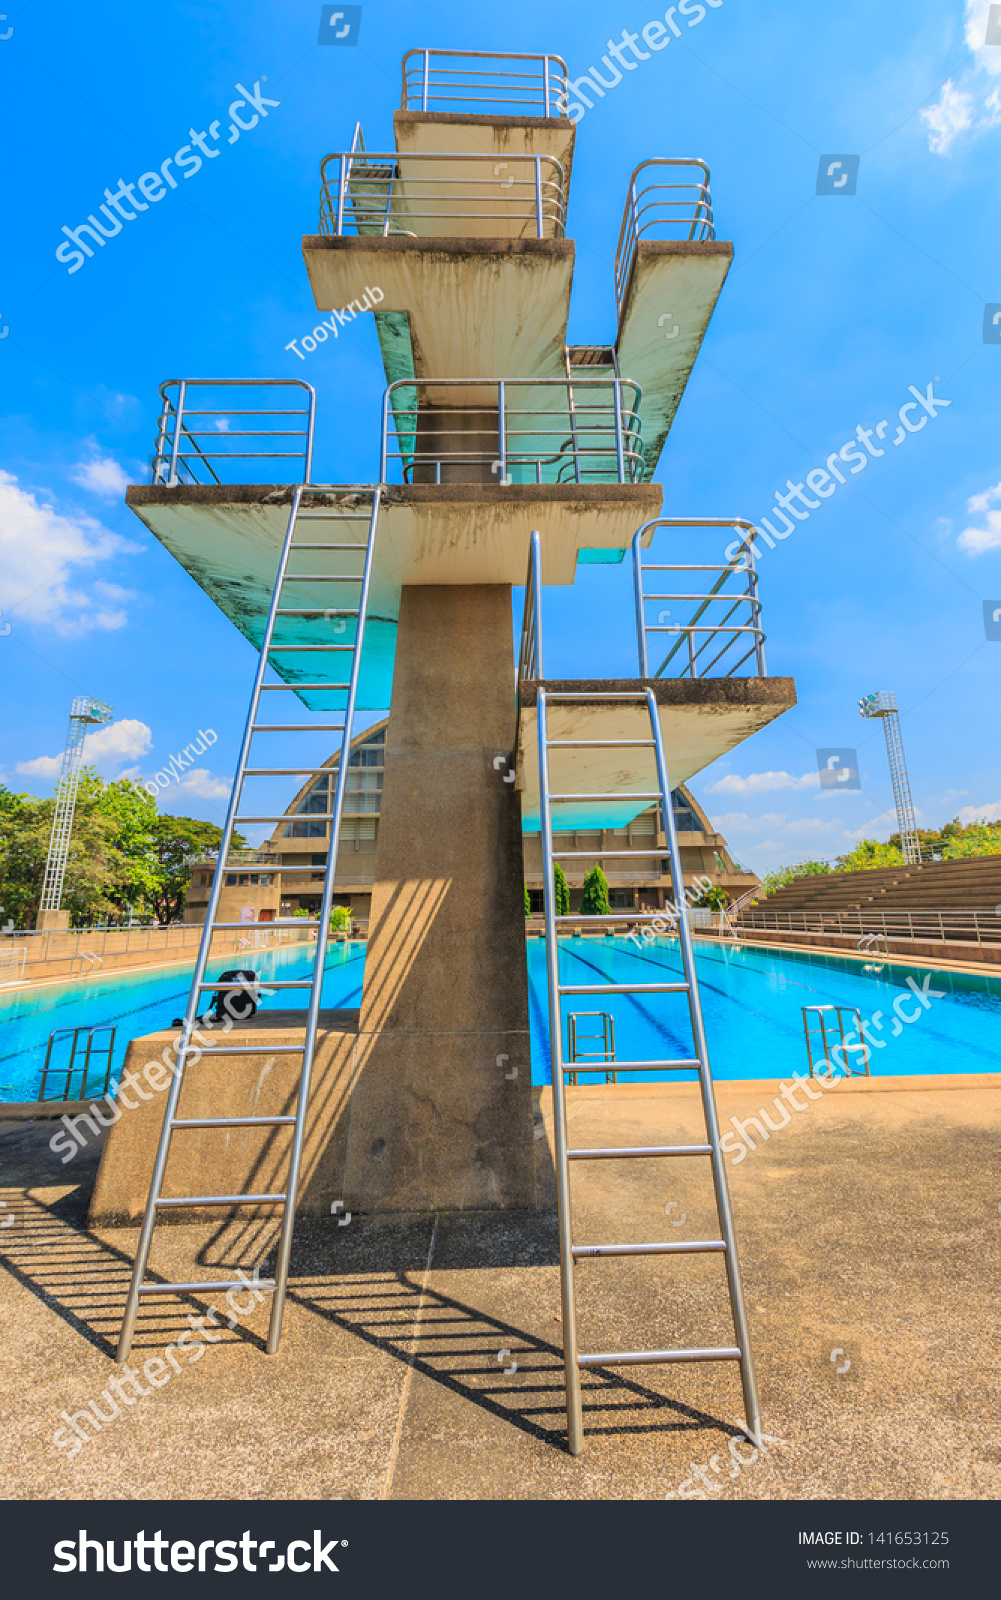 Related Keywords Suggestions For High Diving Board